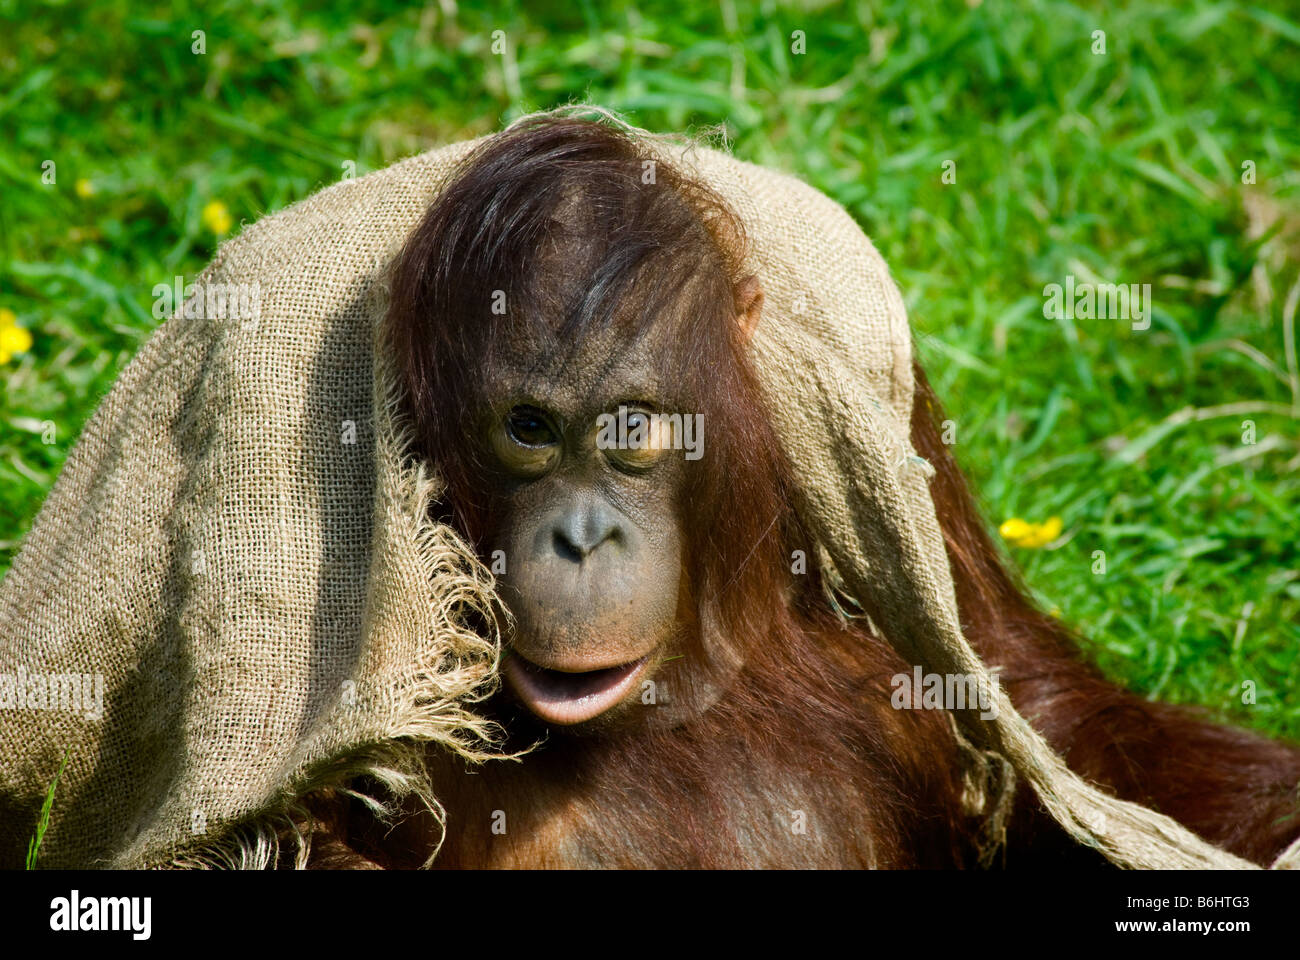 cute baby orangutan playing on the grass Stock Photo